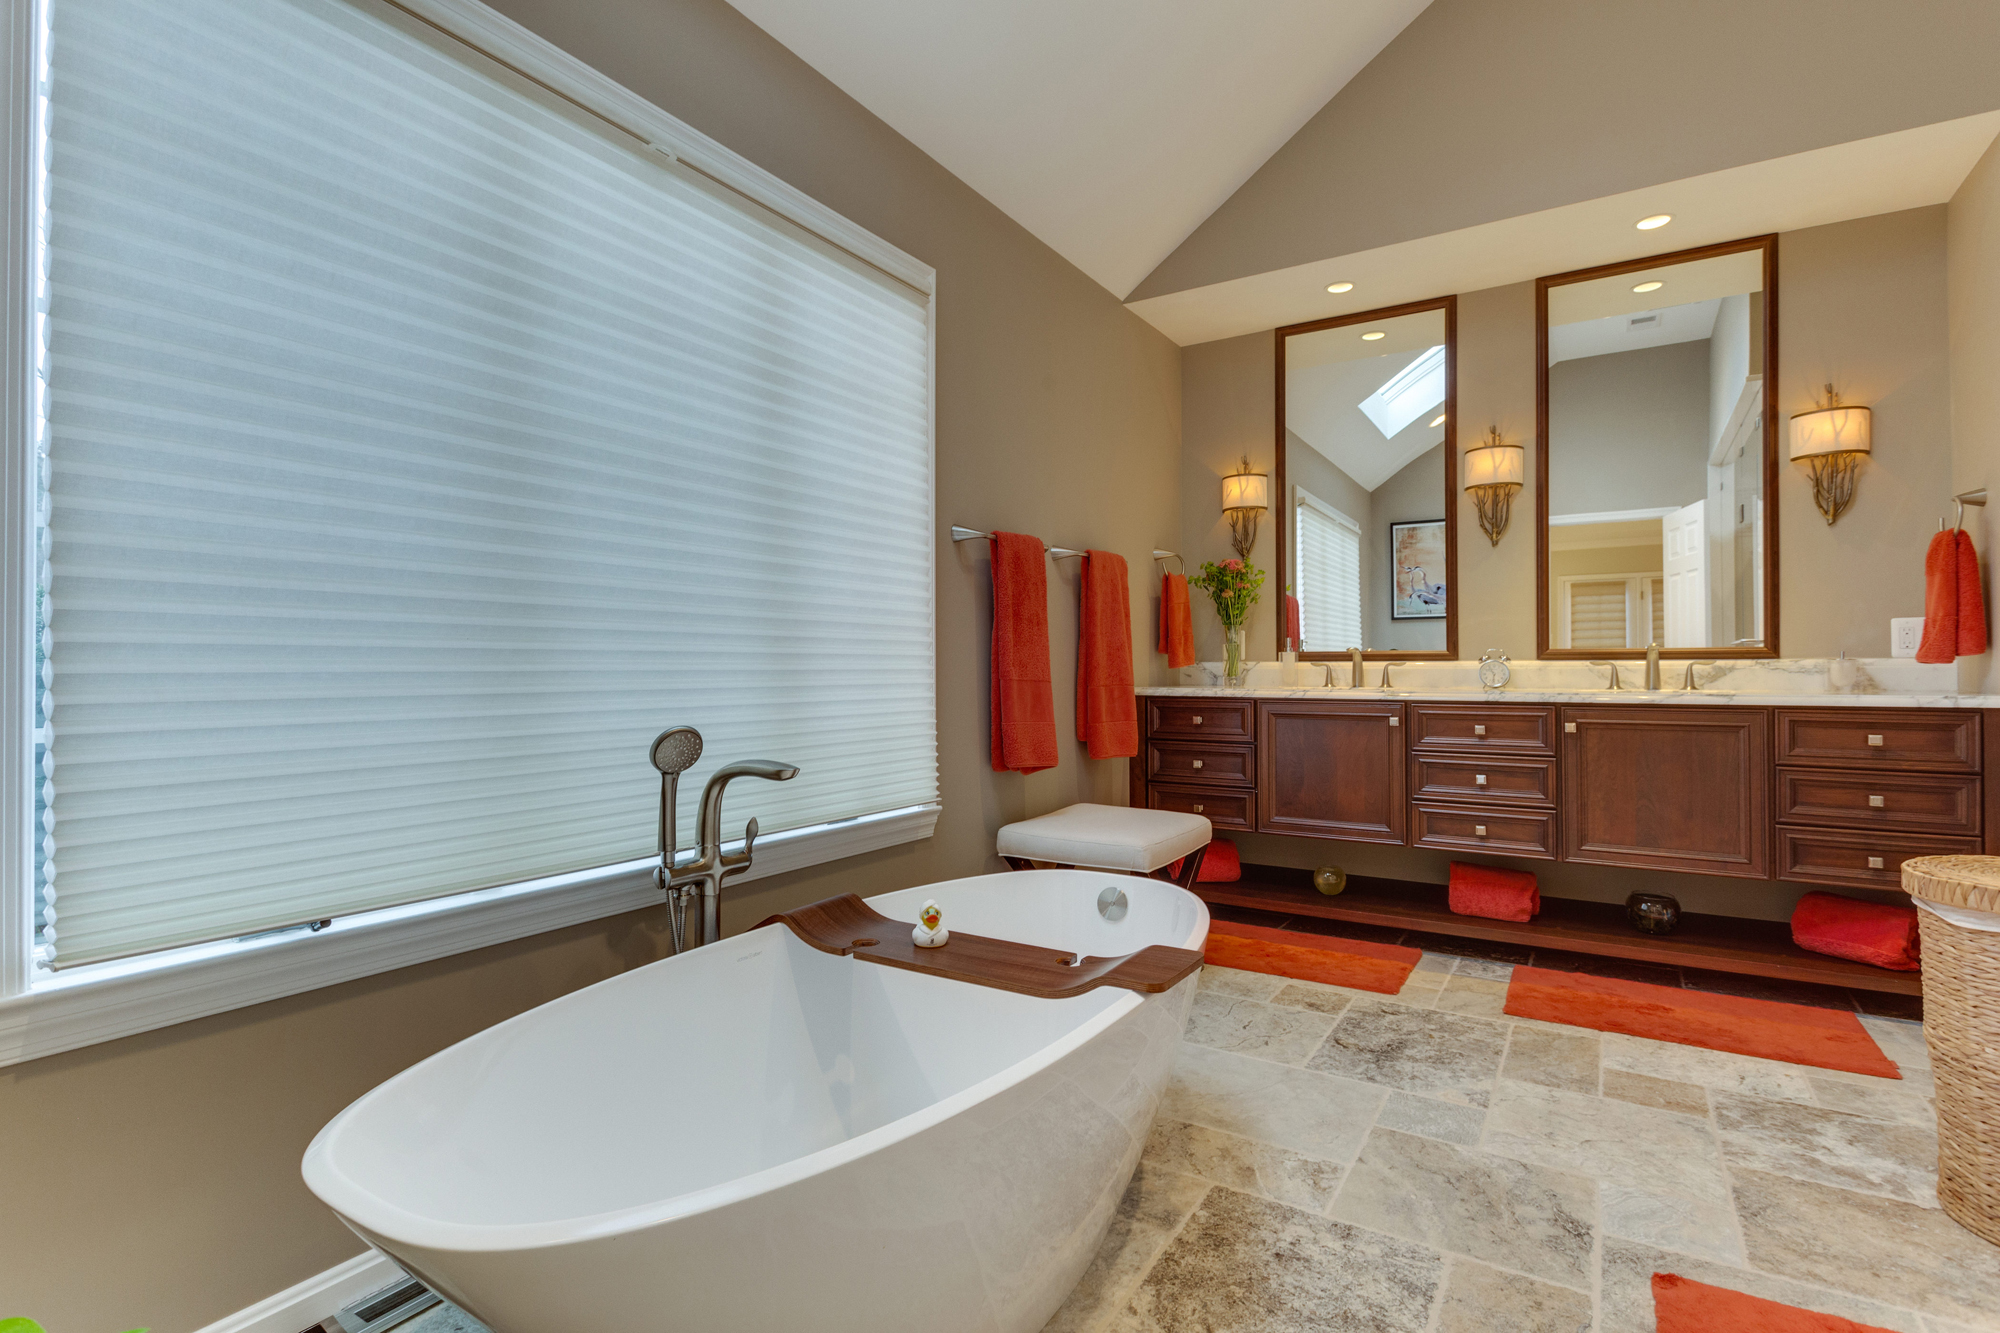 Universal Design Master Suite Renovation in McLean, VA | BOWA